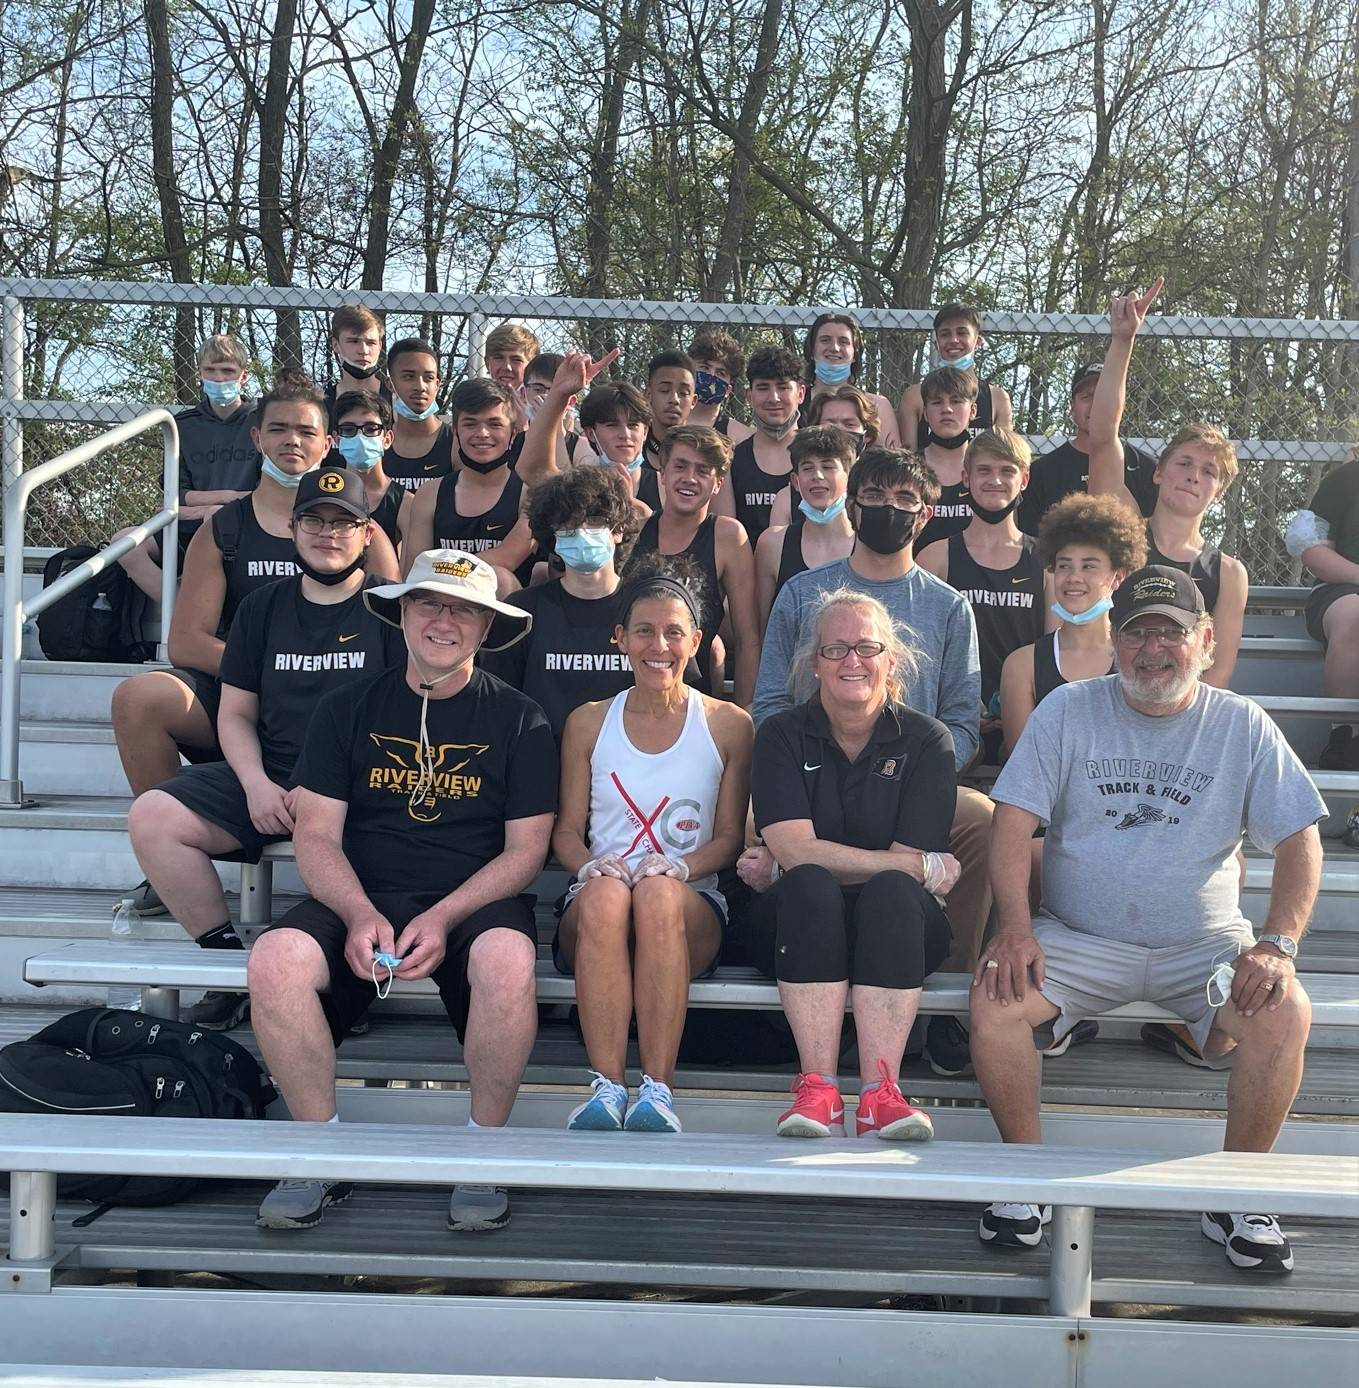 Riverview Boys' Track and Field Team